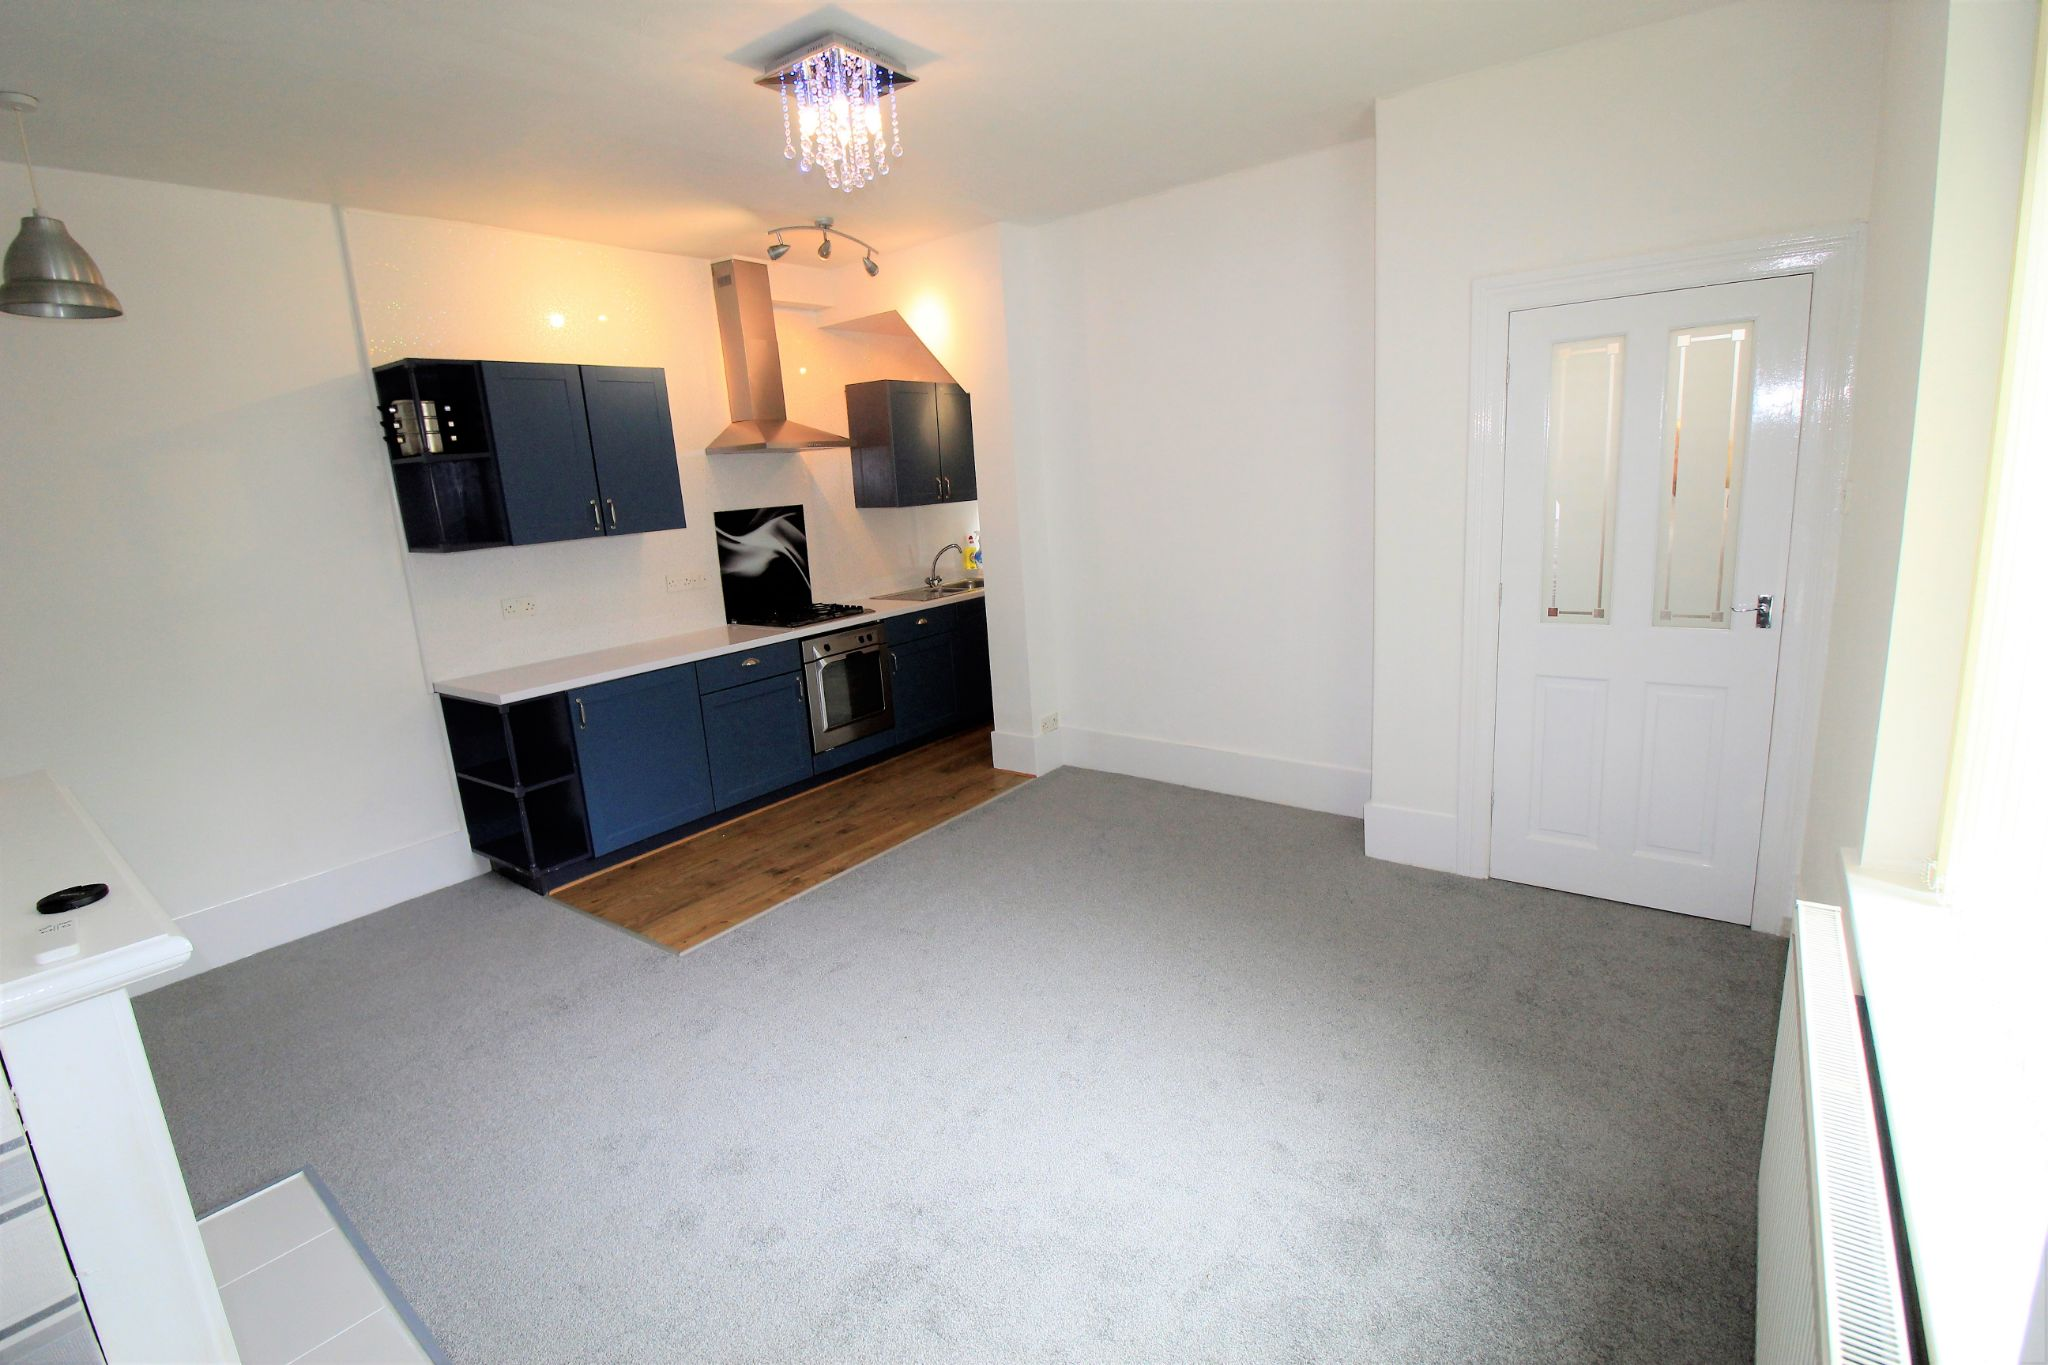 2 bedroom semi-detached house For Sale in Huddersfield - Lounge / kitchen area